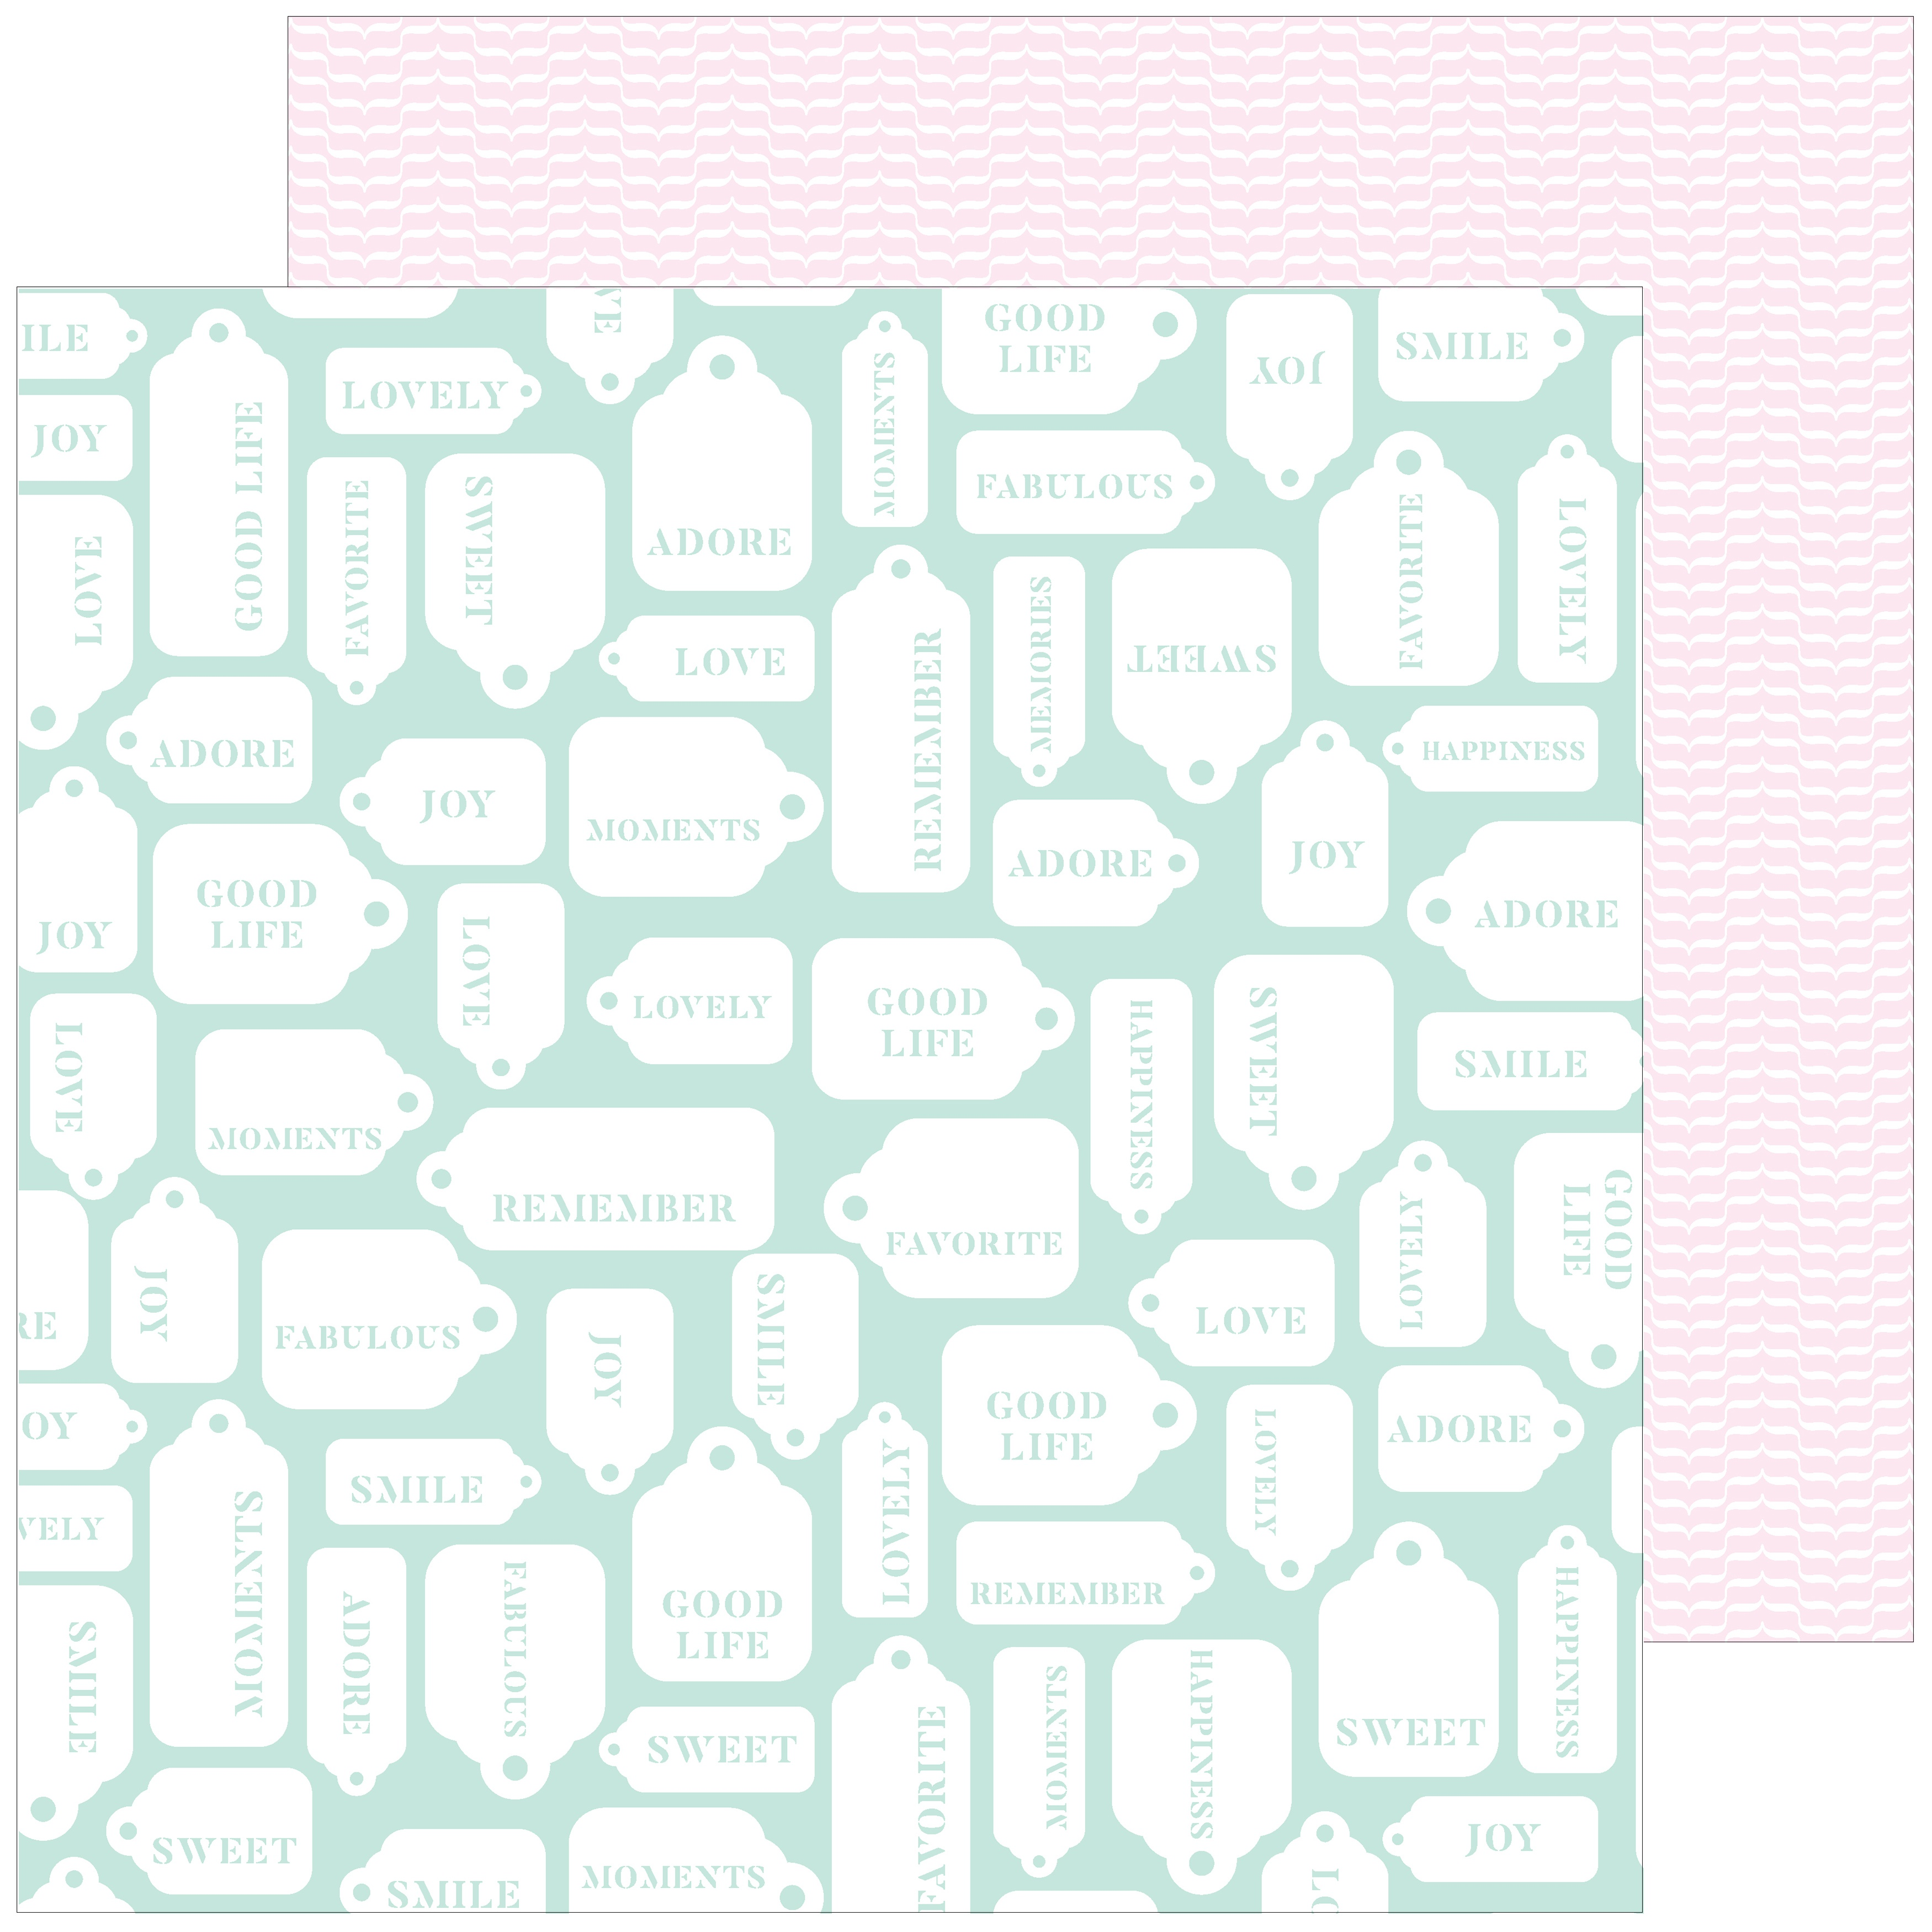 My Favorite Story Double-Sided Cardstock 12X12-Good Life